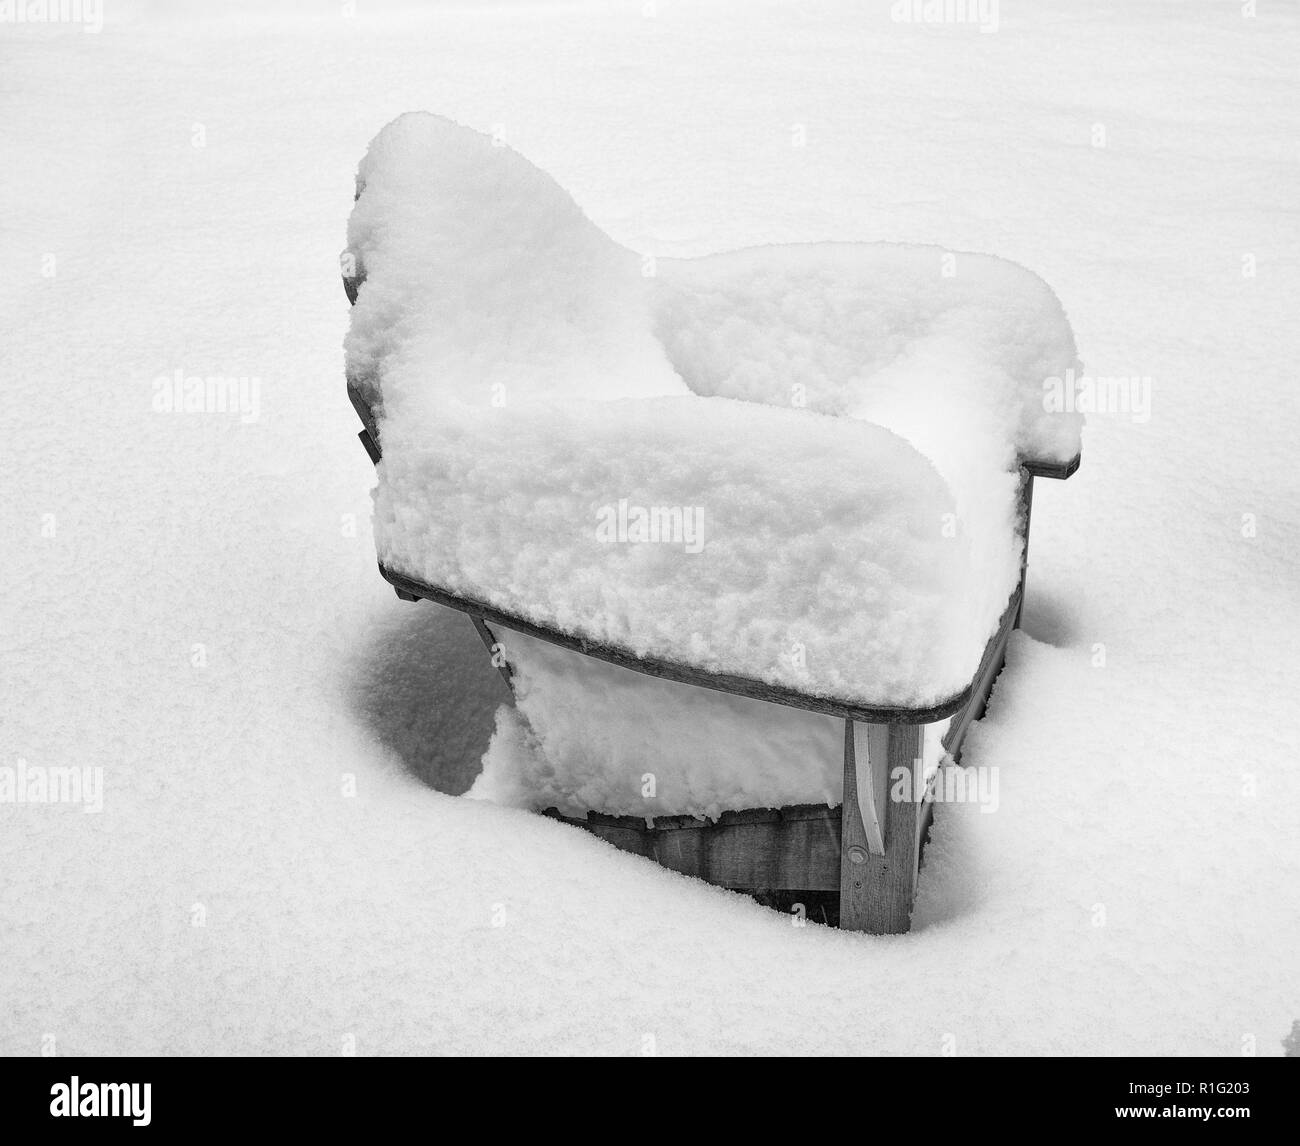 Adirondack lawn chair covered in fresh snow from winter storm. - Stock Image